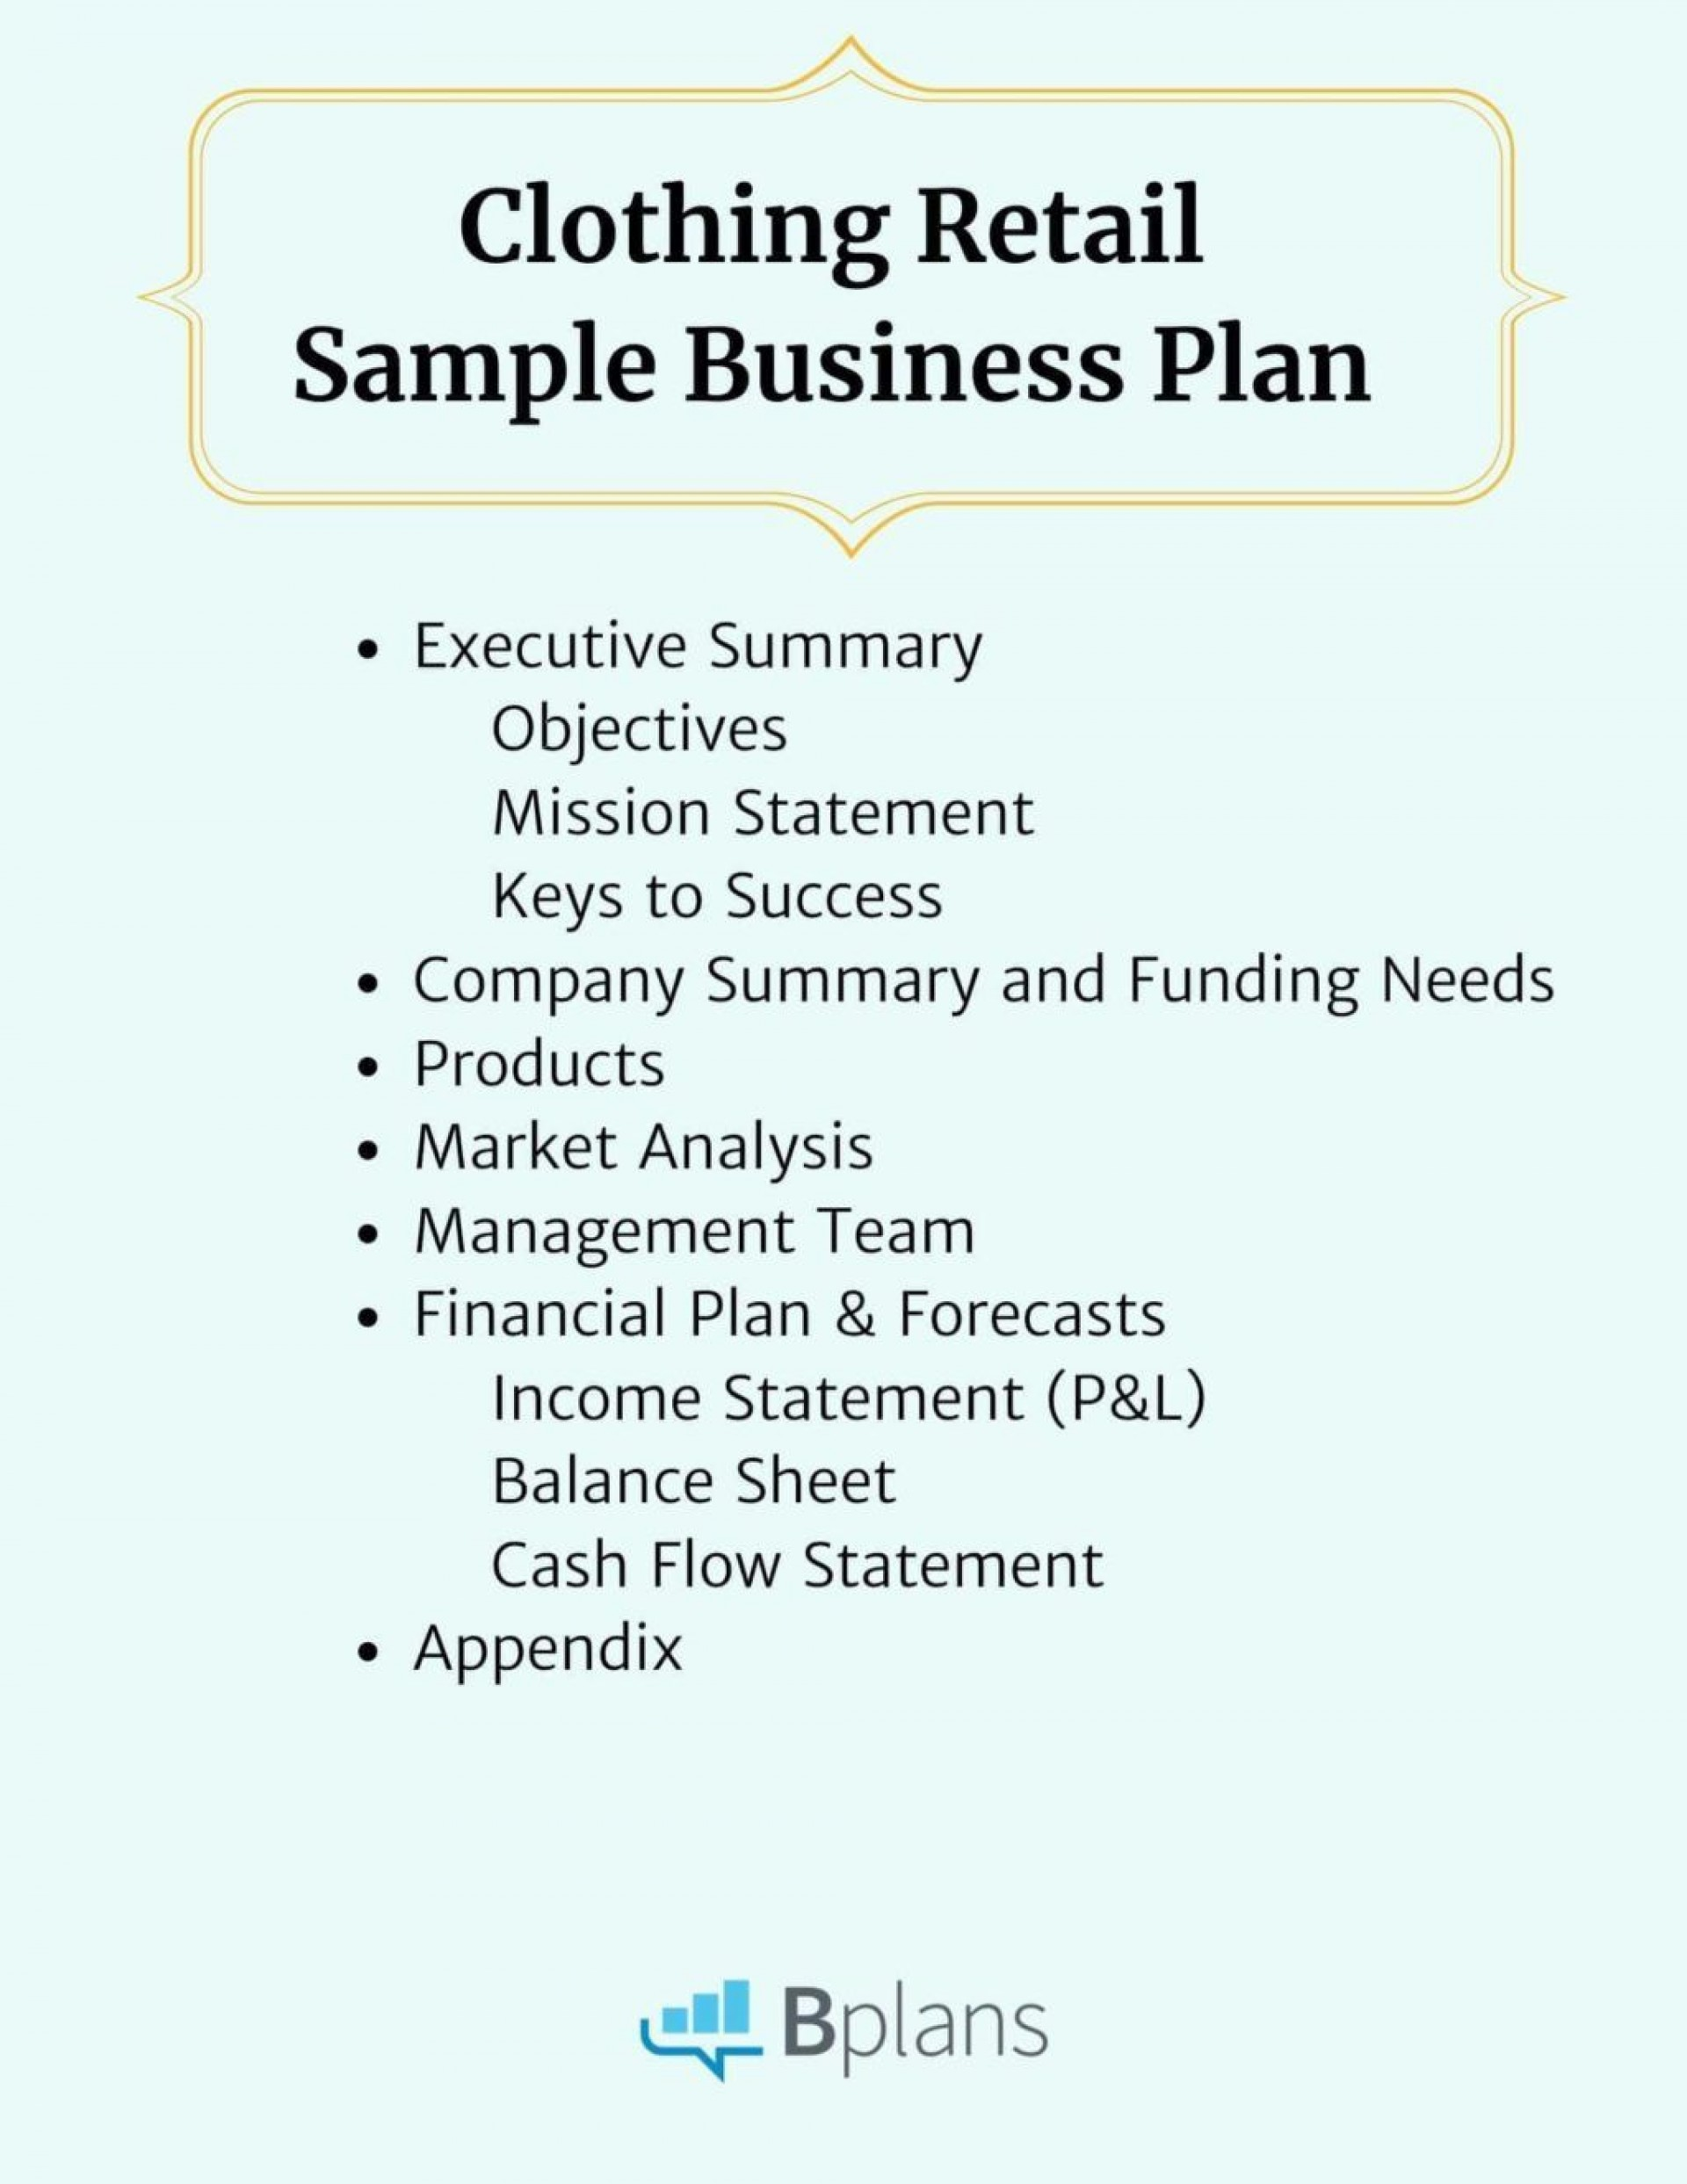 001 Formidable Marketing Busines Plan Format Design  Template For Small Free1920